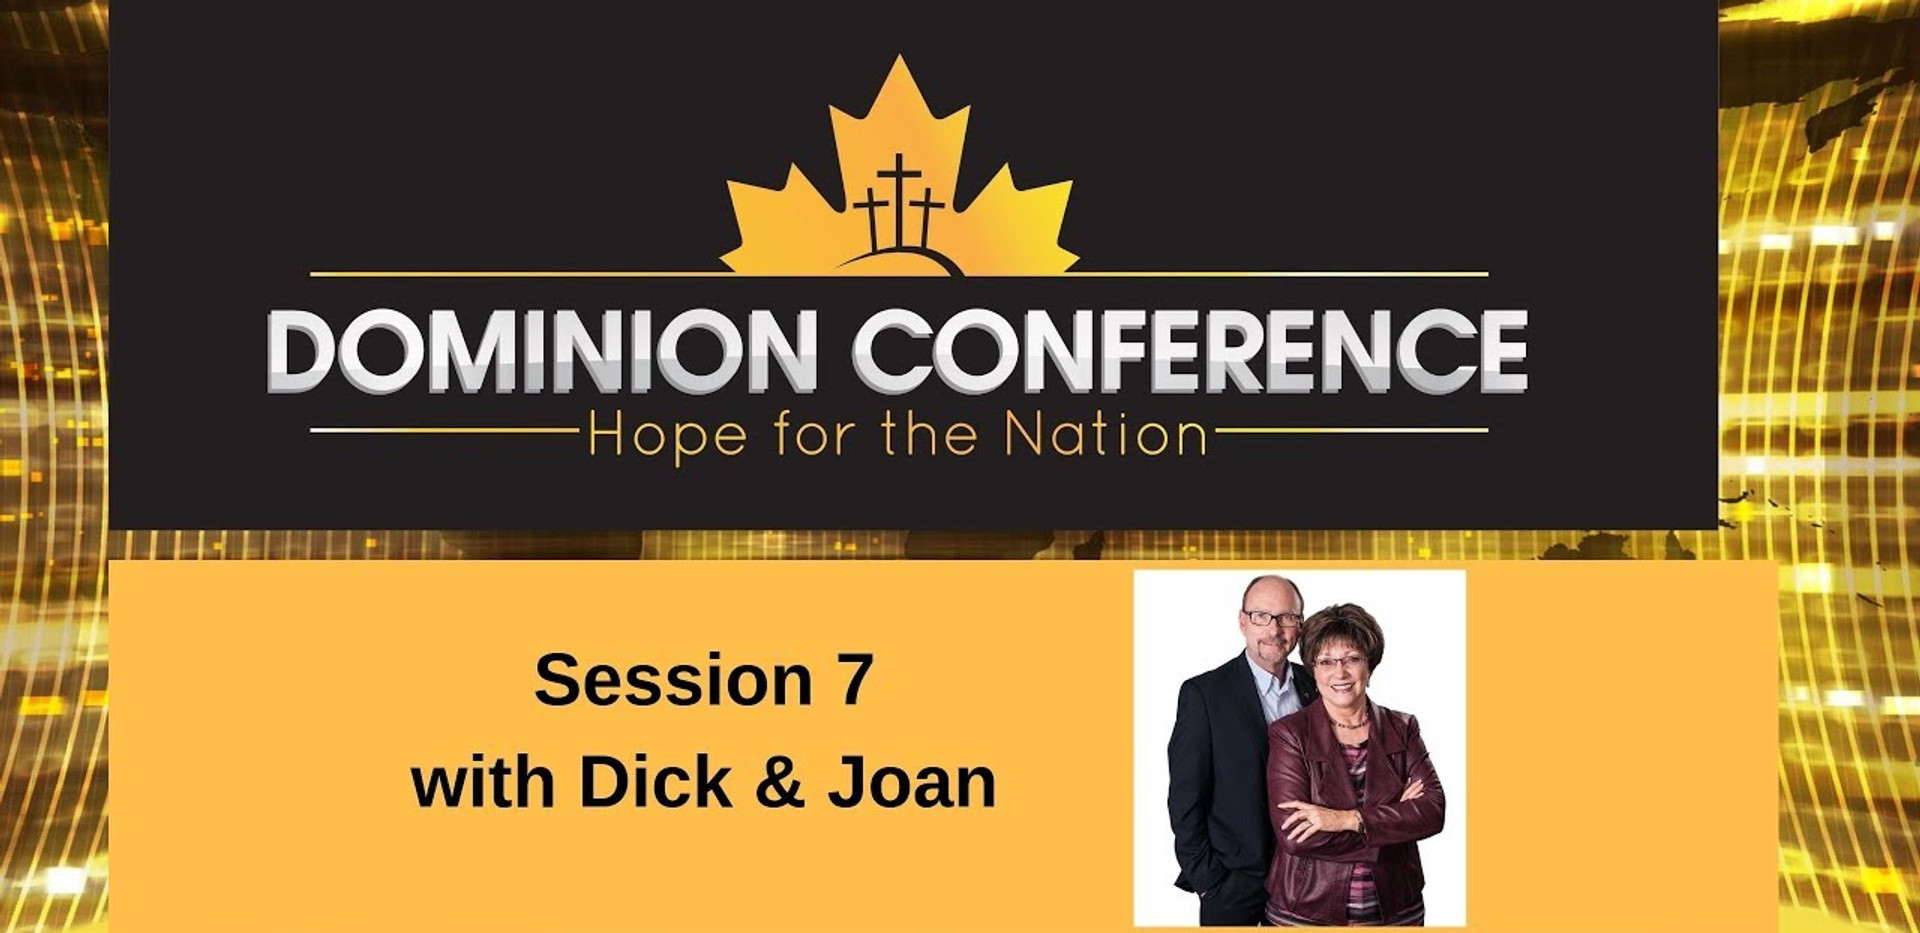 Dominion Conference Lethbridge 2019 | Session Seven | Monday, July 1st 2019 | Dick & Joan Deweert